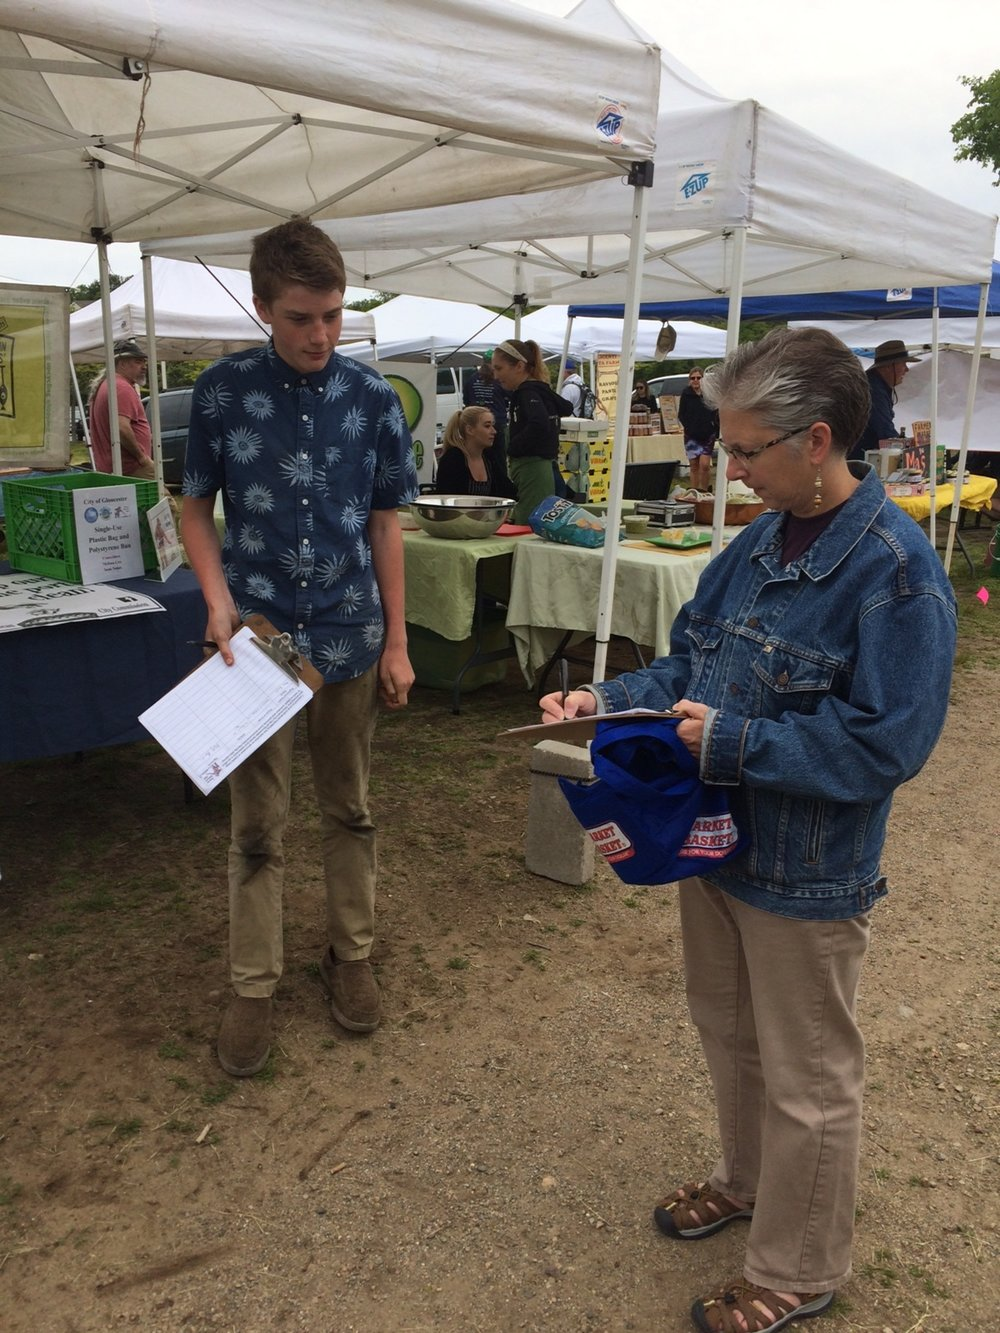 Intern Josh (above on right) and EJ (below on  right) represent Seaside Sustainability on behalf of the Plastic Bag & Polystyrene Ordinance Proposal, gathering petition signatures at the Gloucester Farmer's Market at Stage Fort Park.